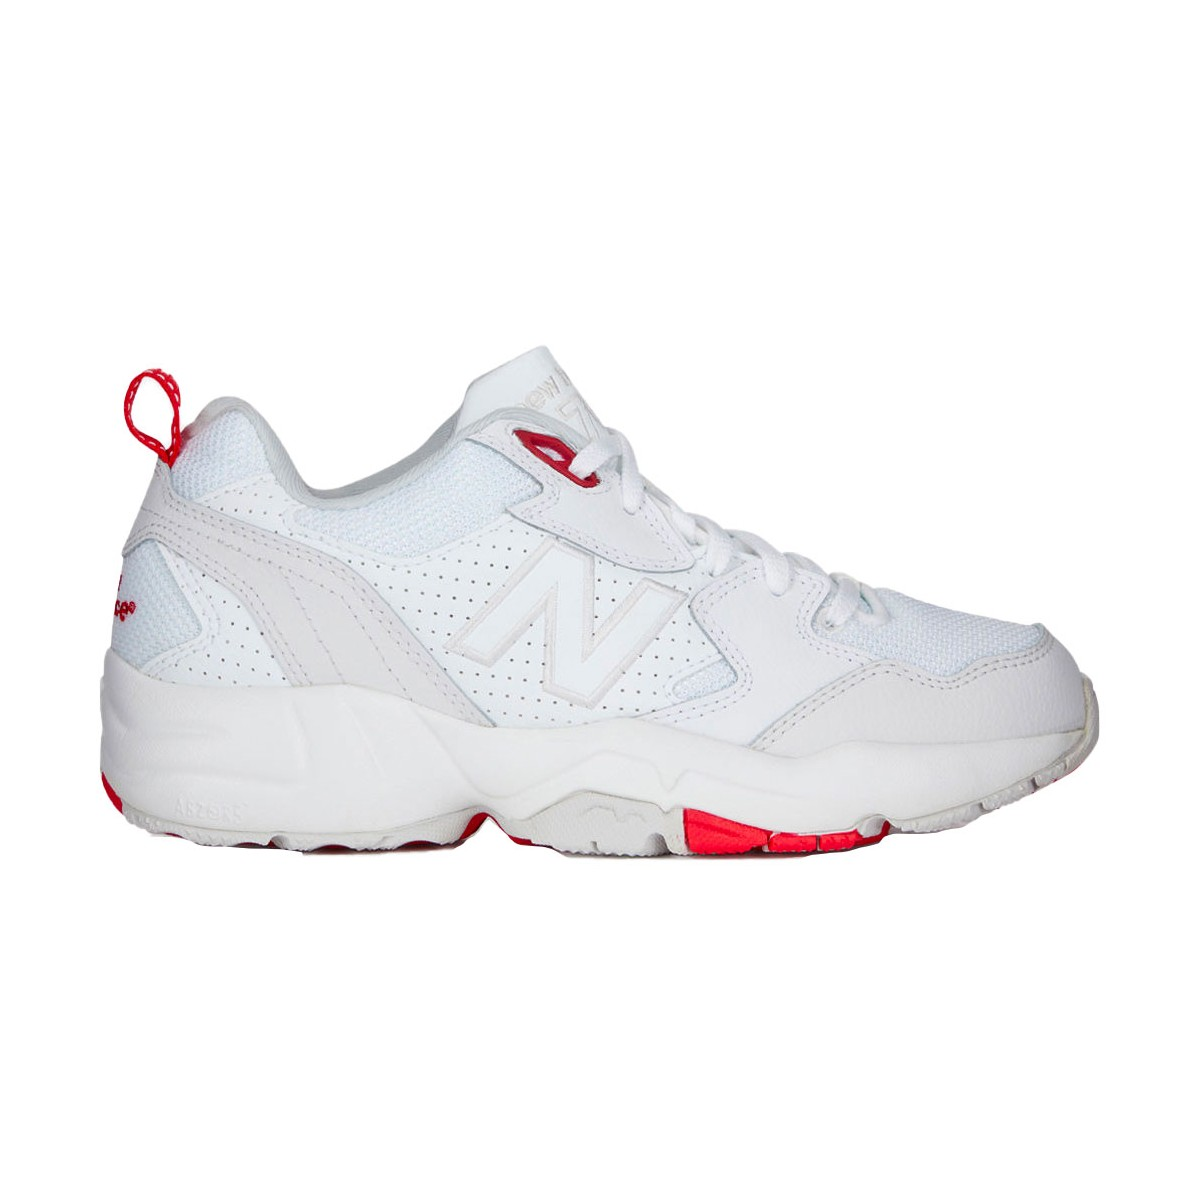 Baskets New Balance WX708 blanches & rouges pour femme   Fred Aston